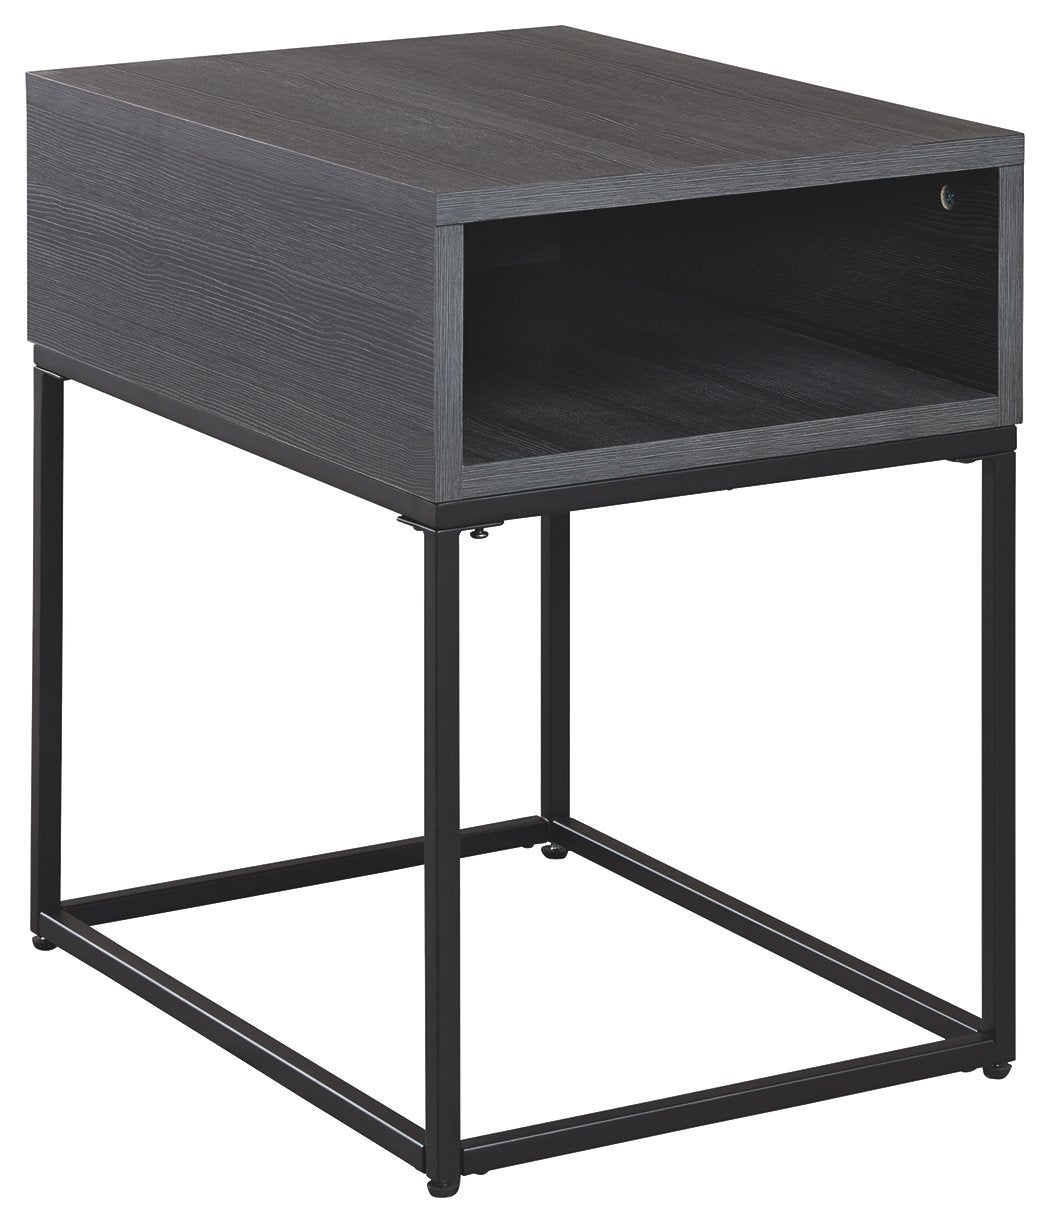 Yarlow Signature Design by Ashley End Table